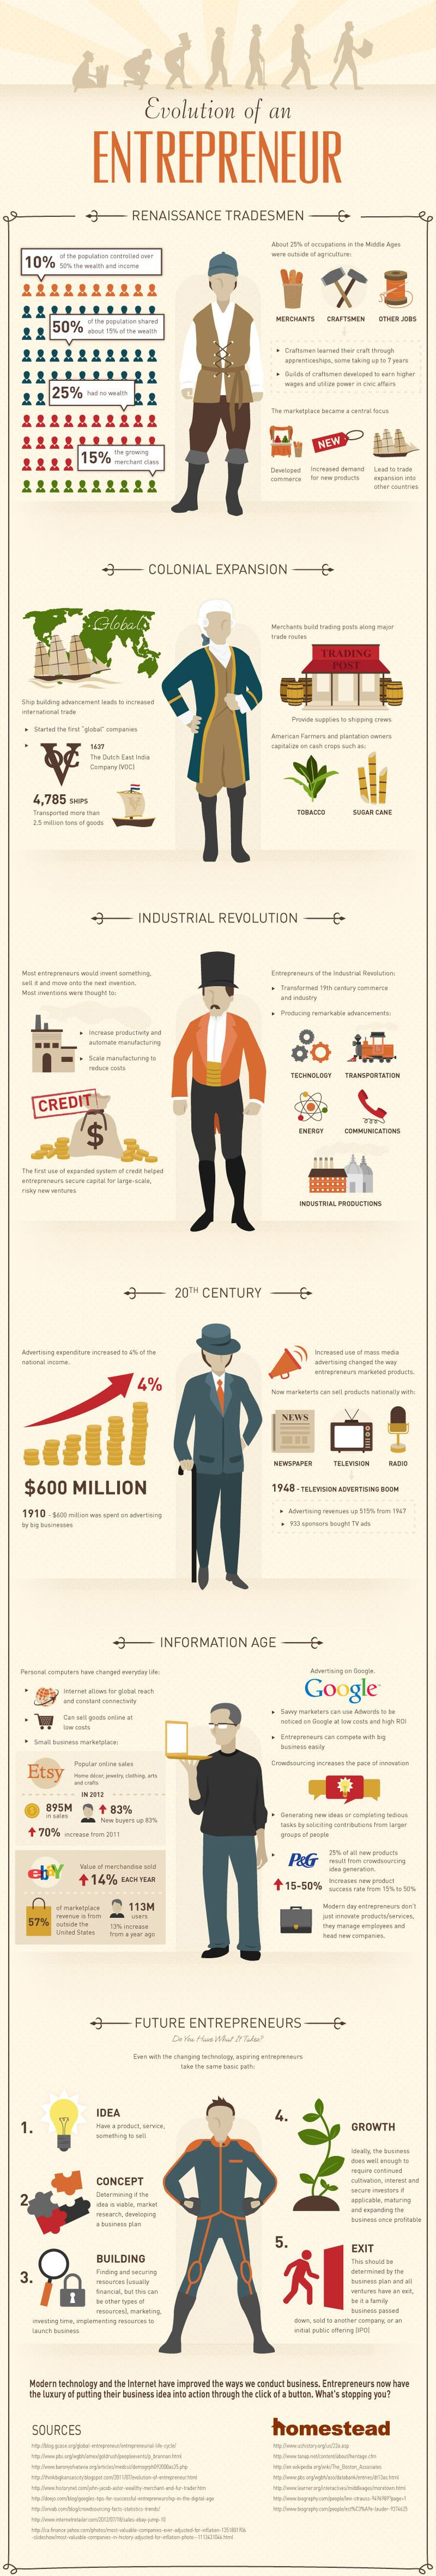 From Marco Polo to Mark Zuckerberg: The Evolution of the Entrepreneur (Infographic)